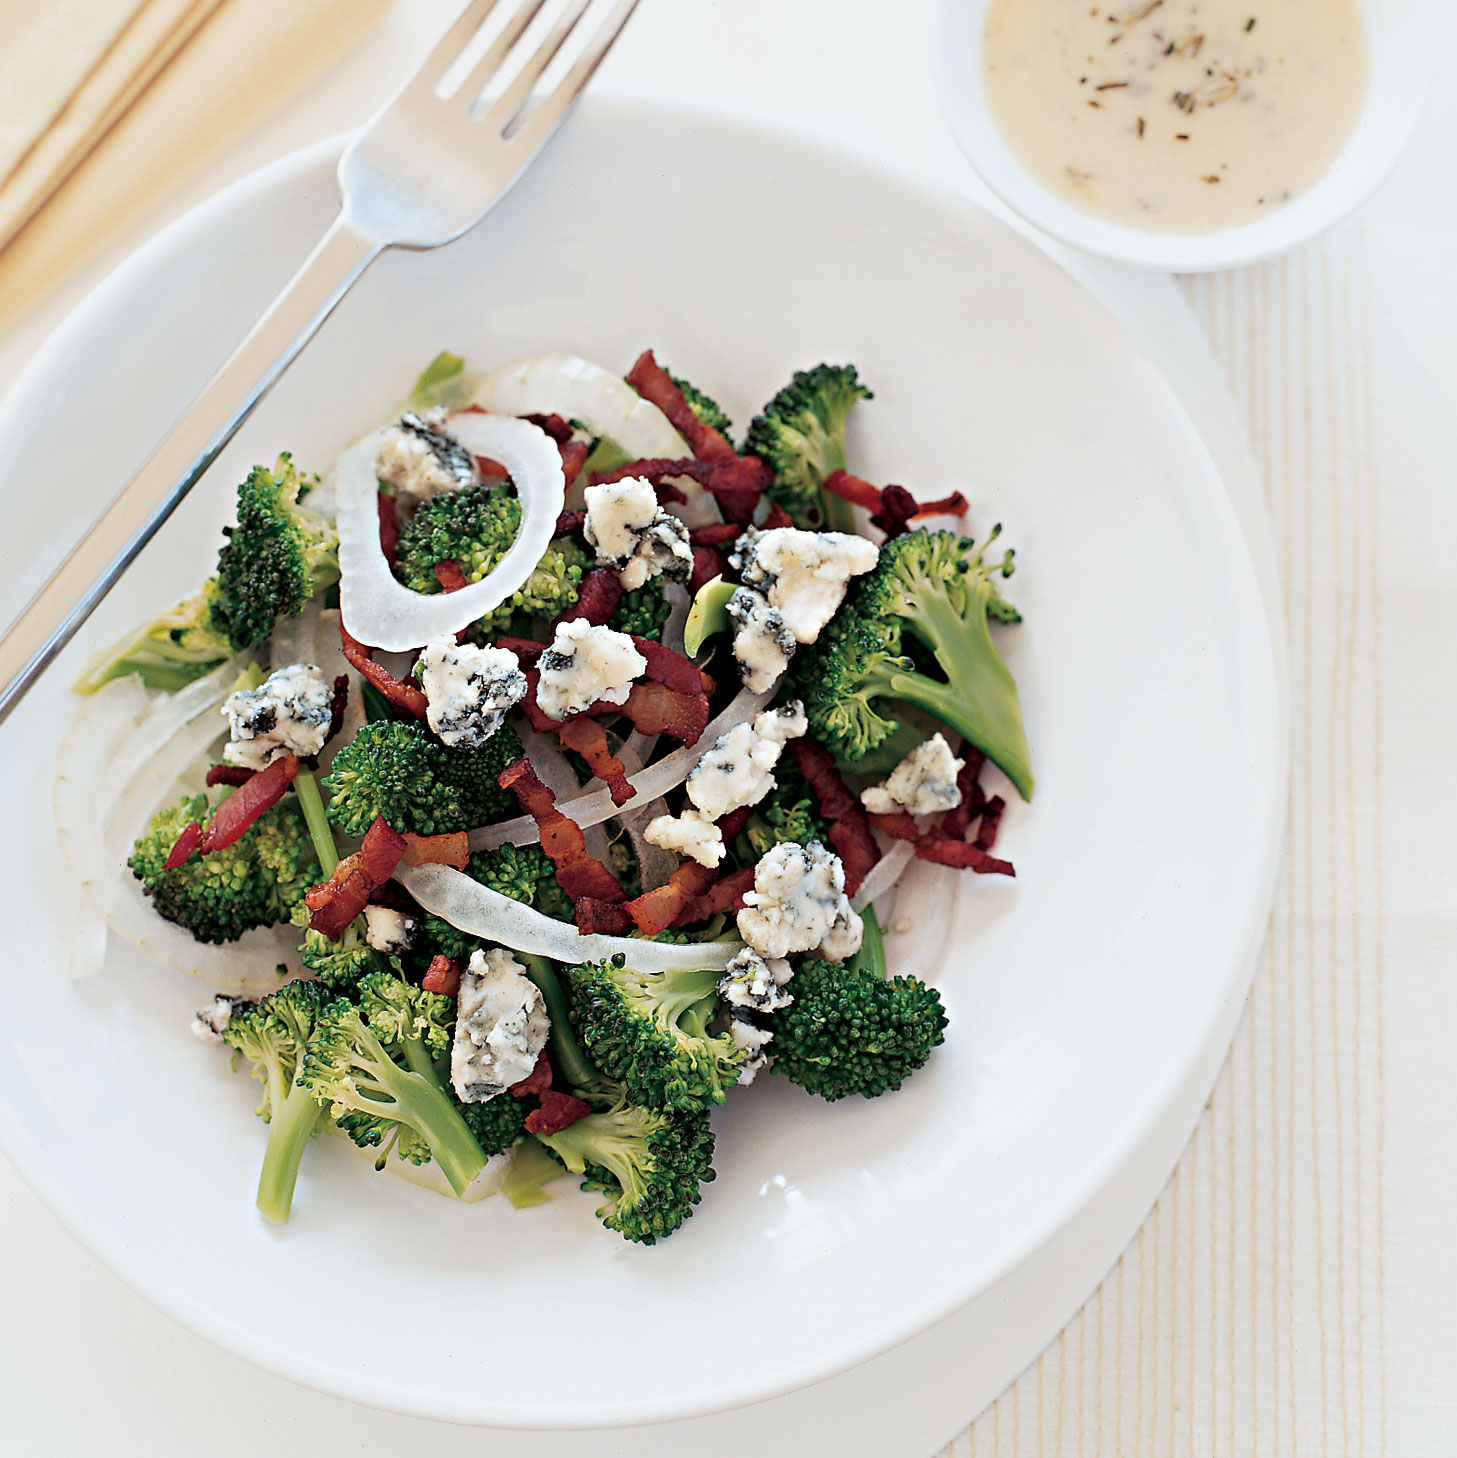 Tangy Broccoli Salad with Buttermilk Dressing